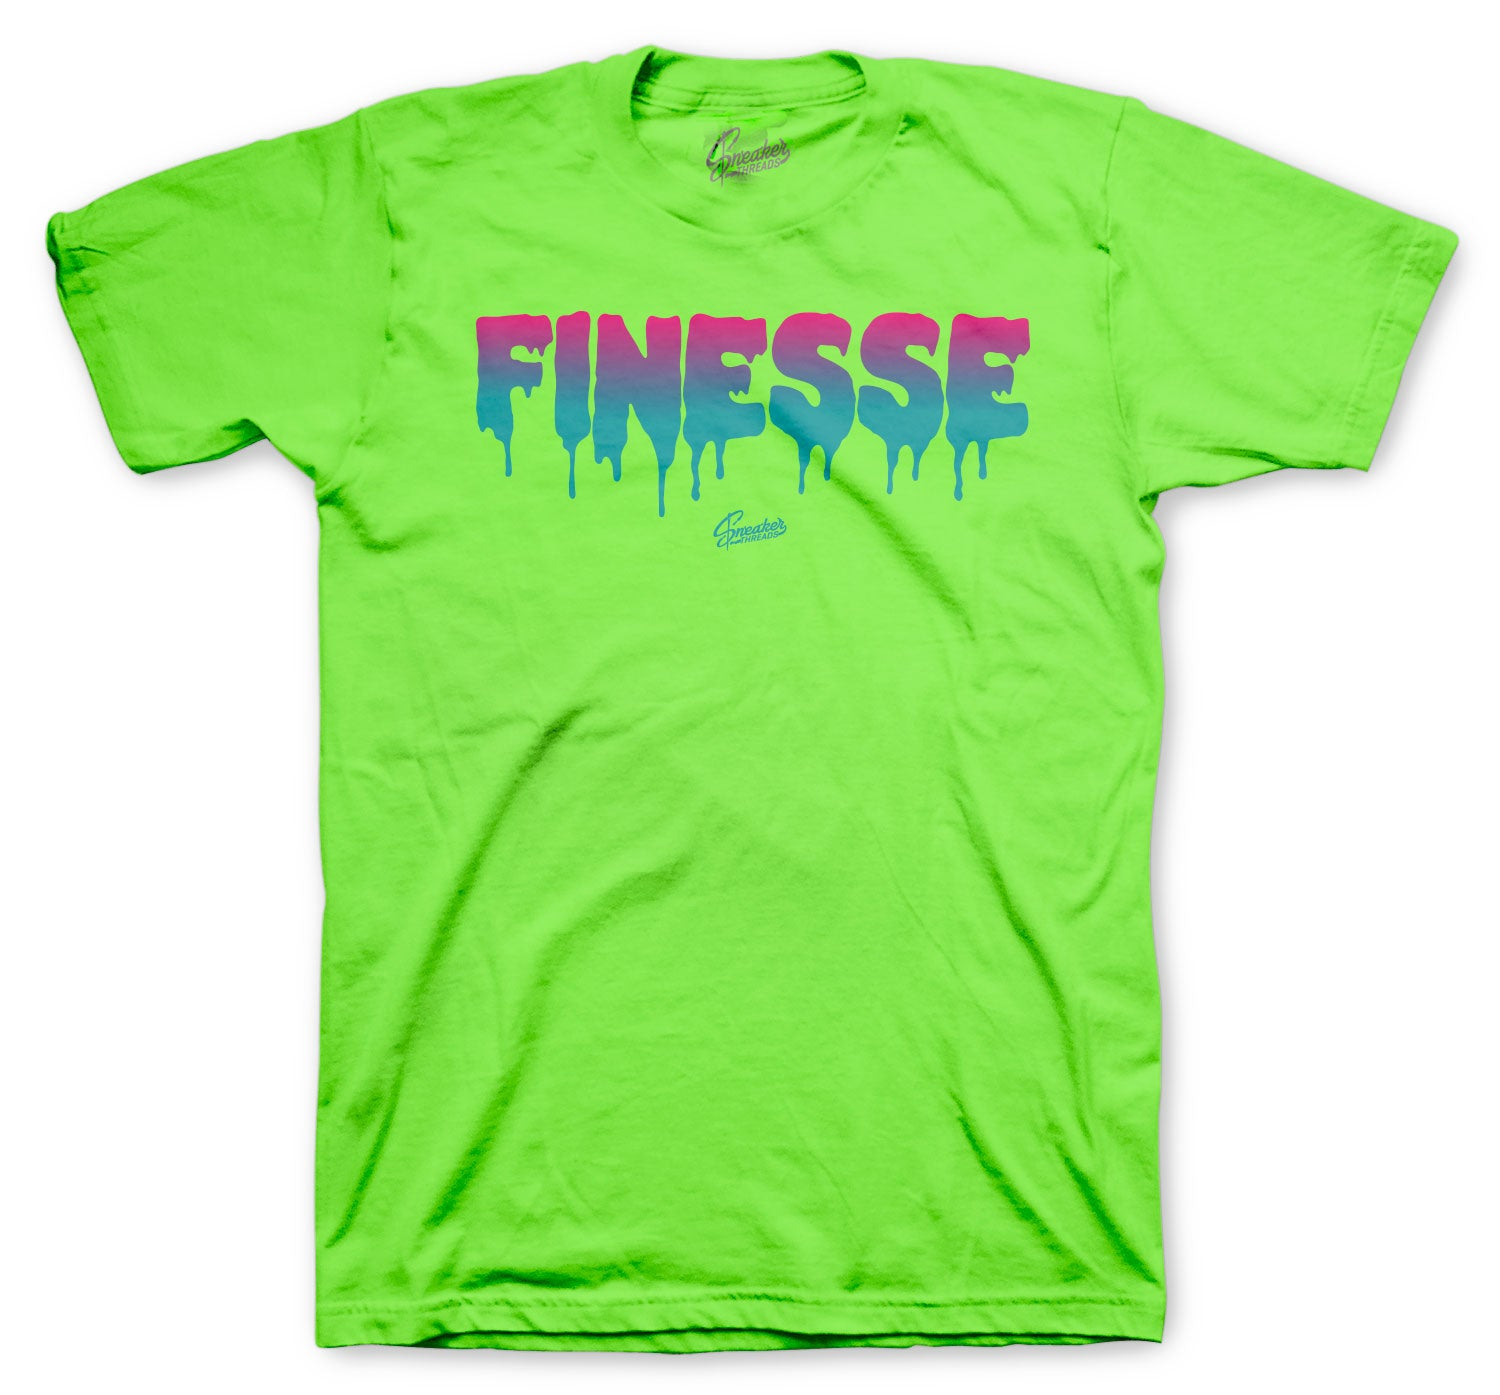 All Star 2020 Swackhammer Finesse Shirt